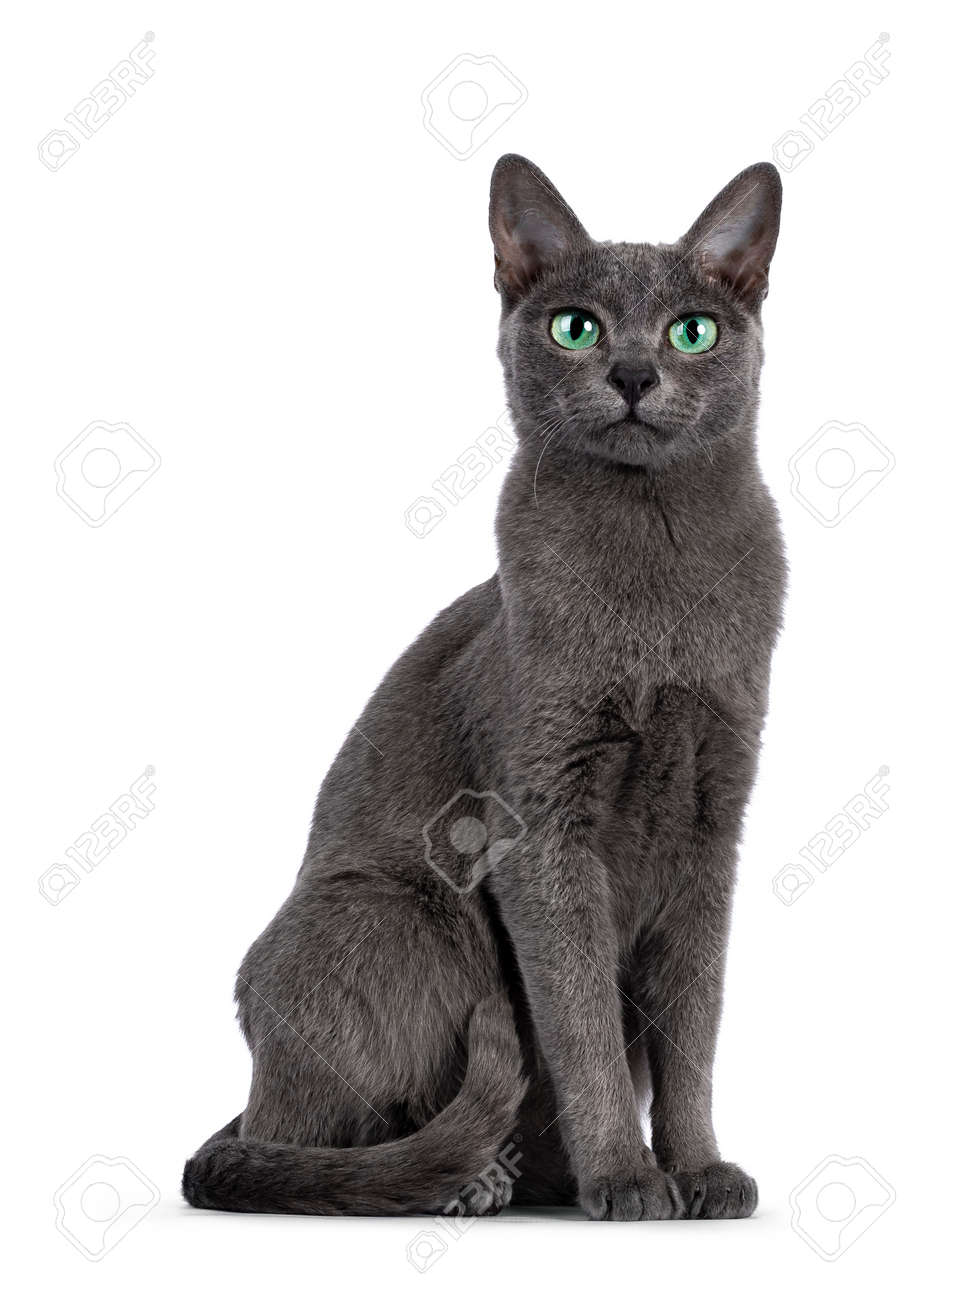 Young silver tipped Korat cat, sitting up like statue. Looking towards camera with bright green eyes and attitude. Isolated on a white background. - 173188937